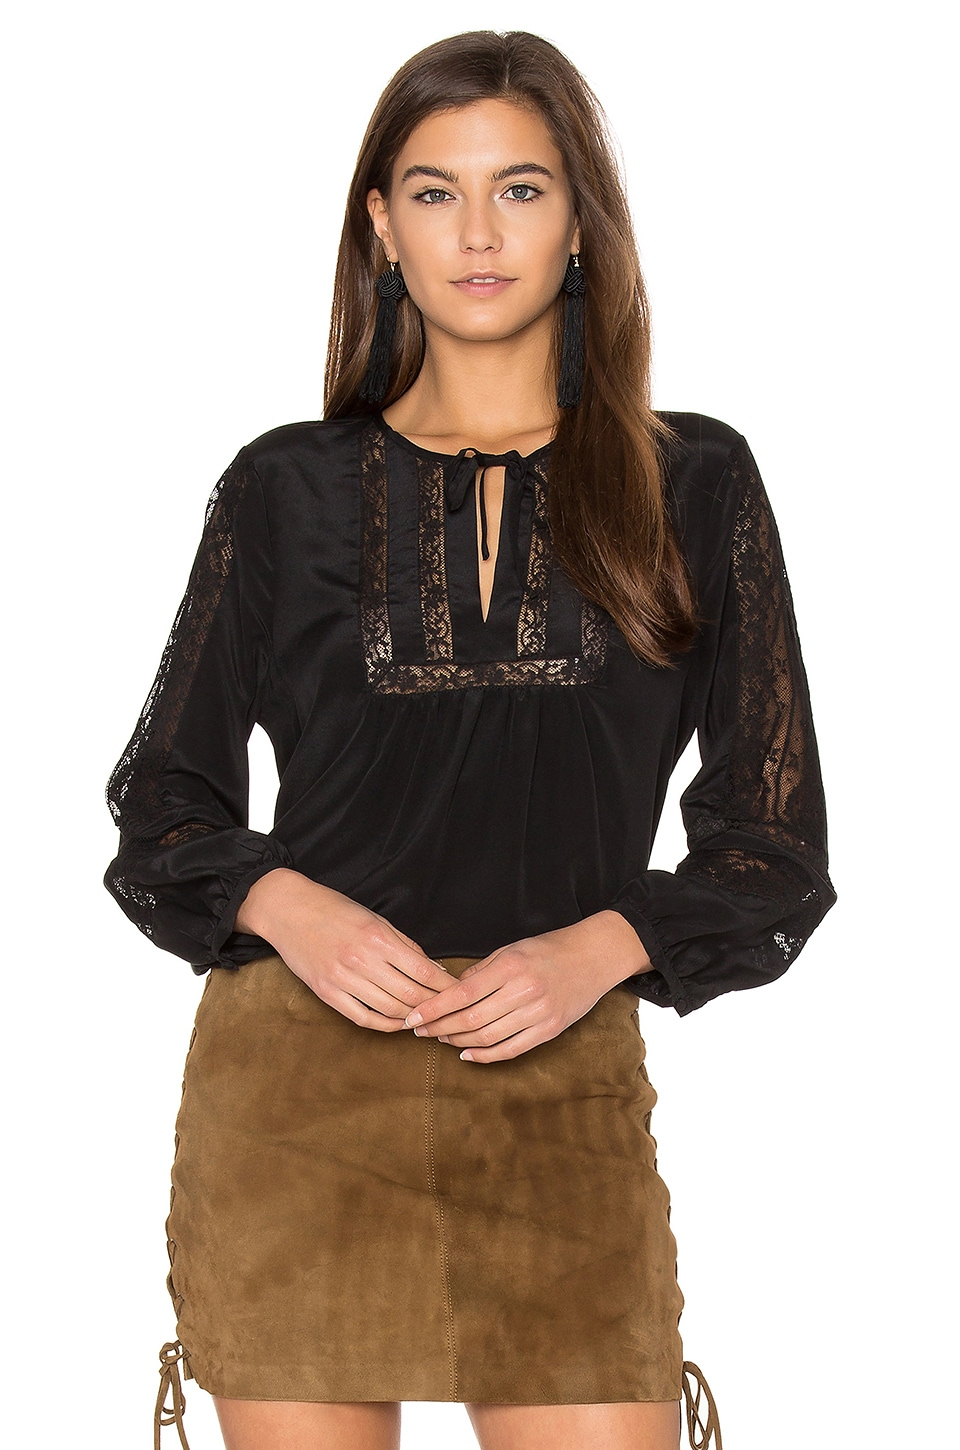 Durango Blouse by Joie